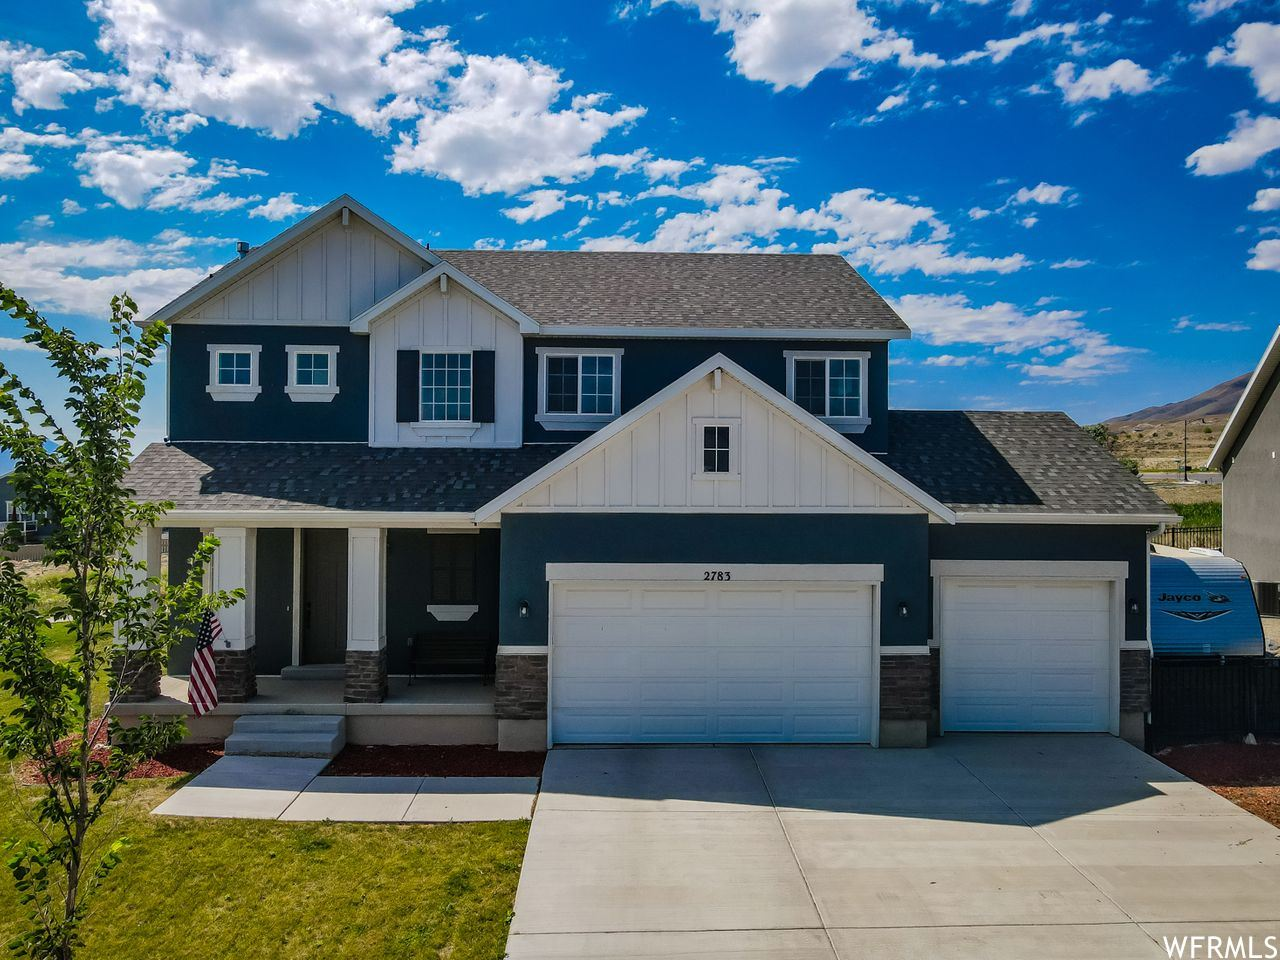 Photo of 2783 S WATERVIEW DR, Saratoga Springs, UT 84045 (MLS # 1770556)